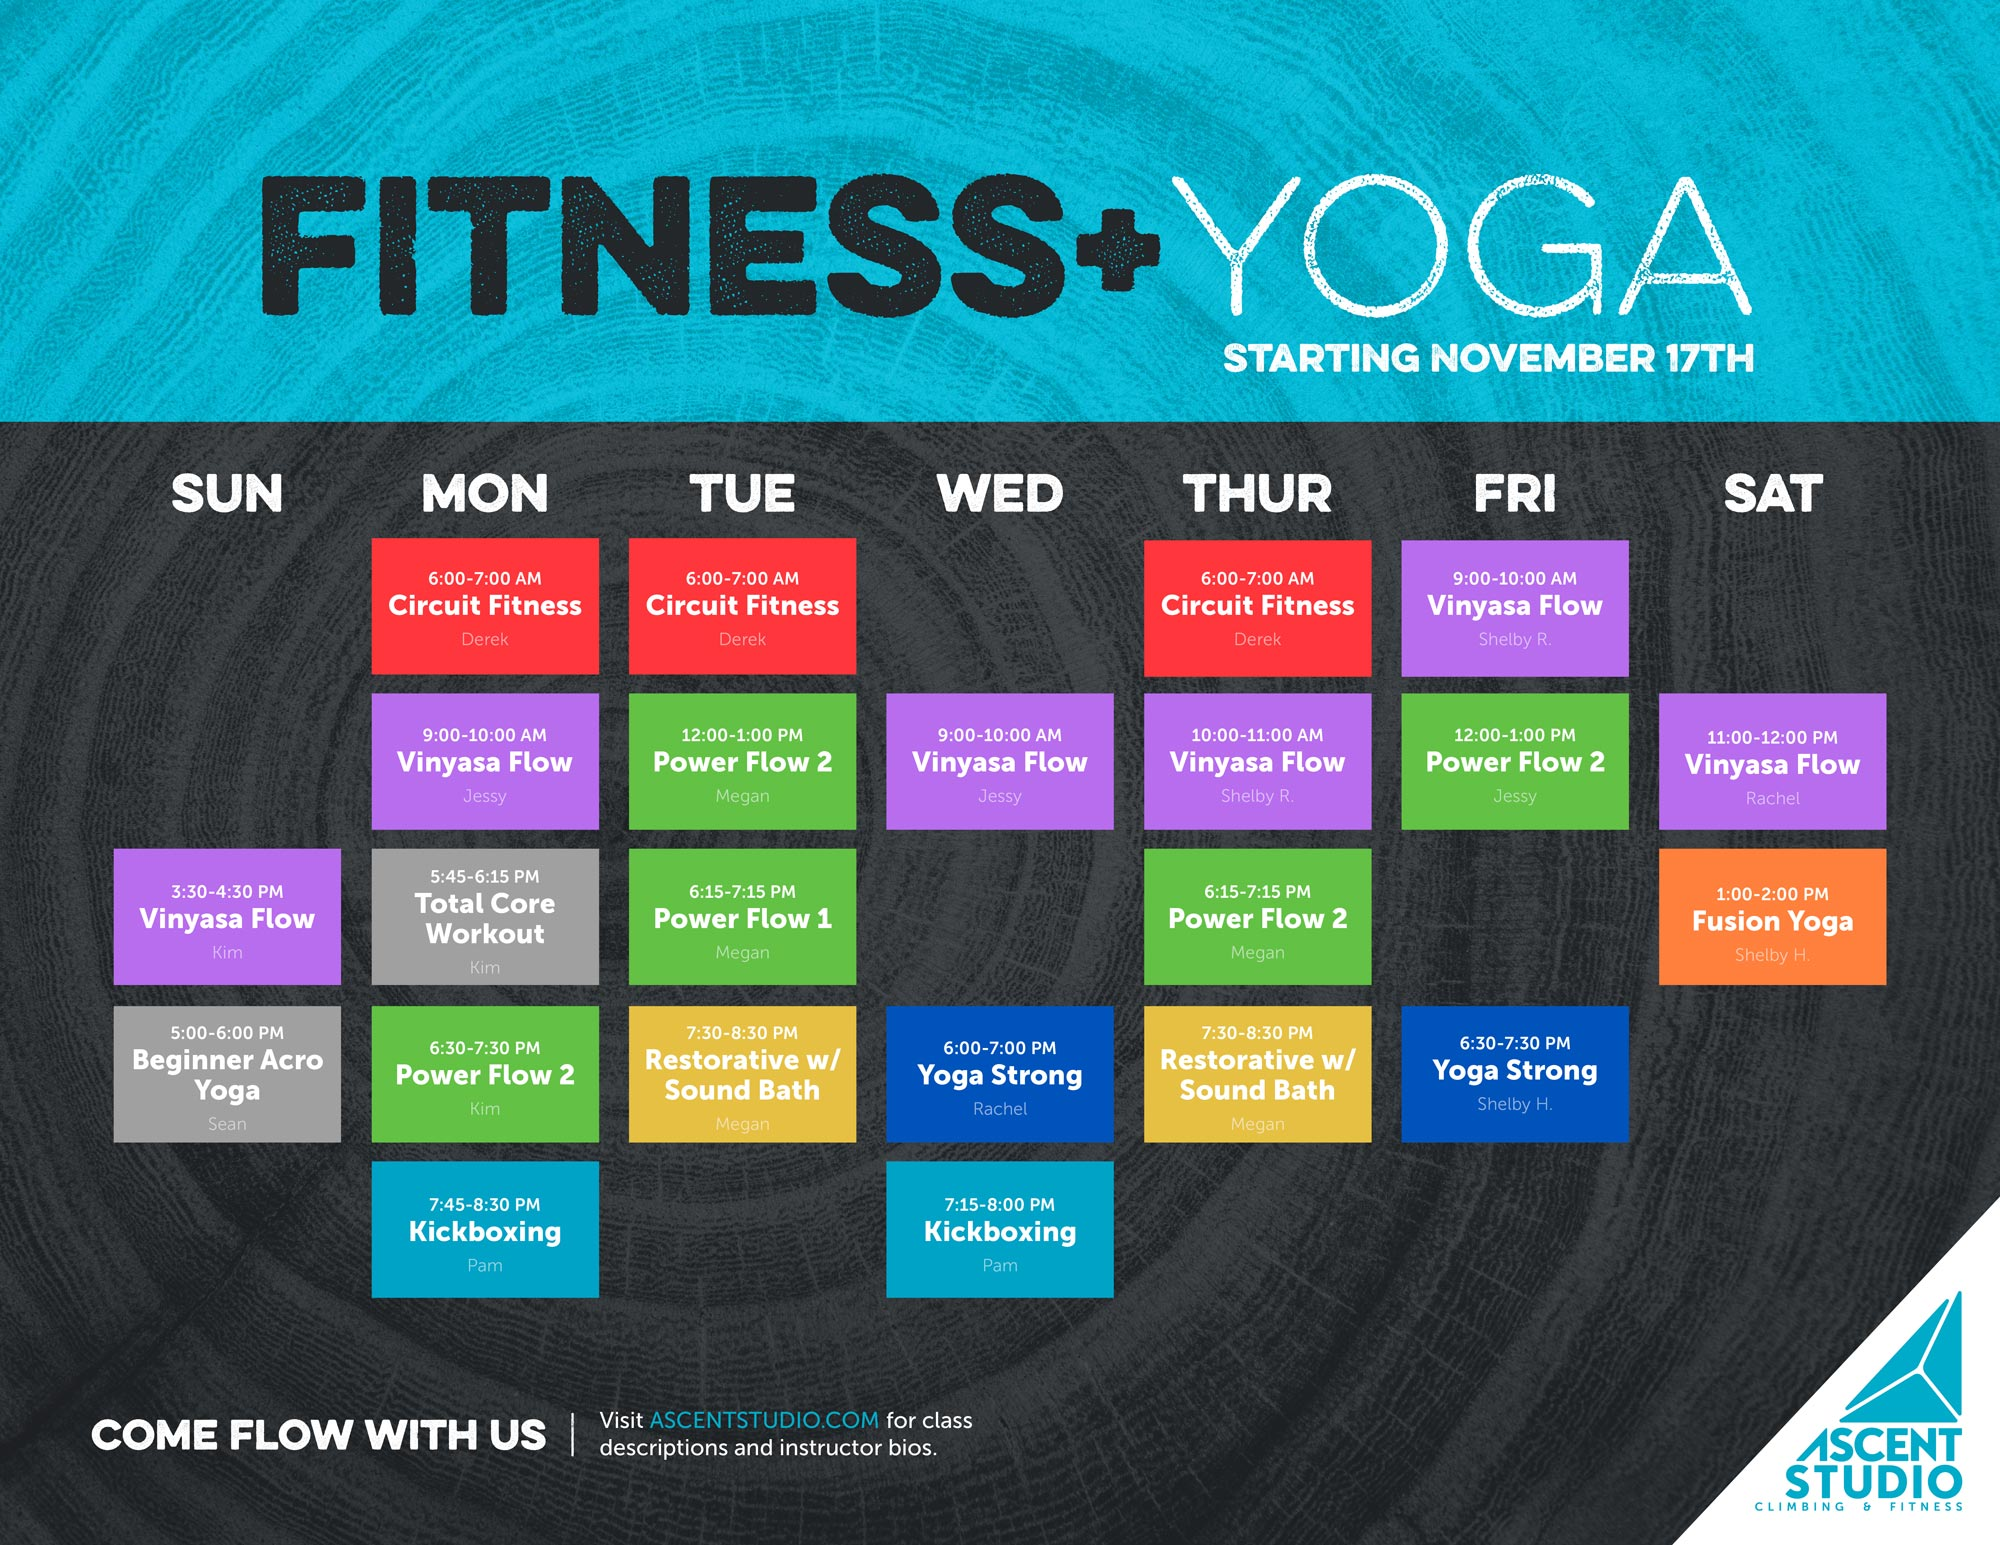 Current Fitness + Yoga Schedule